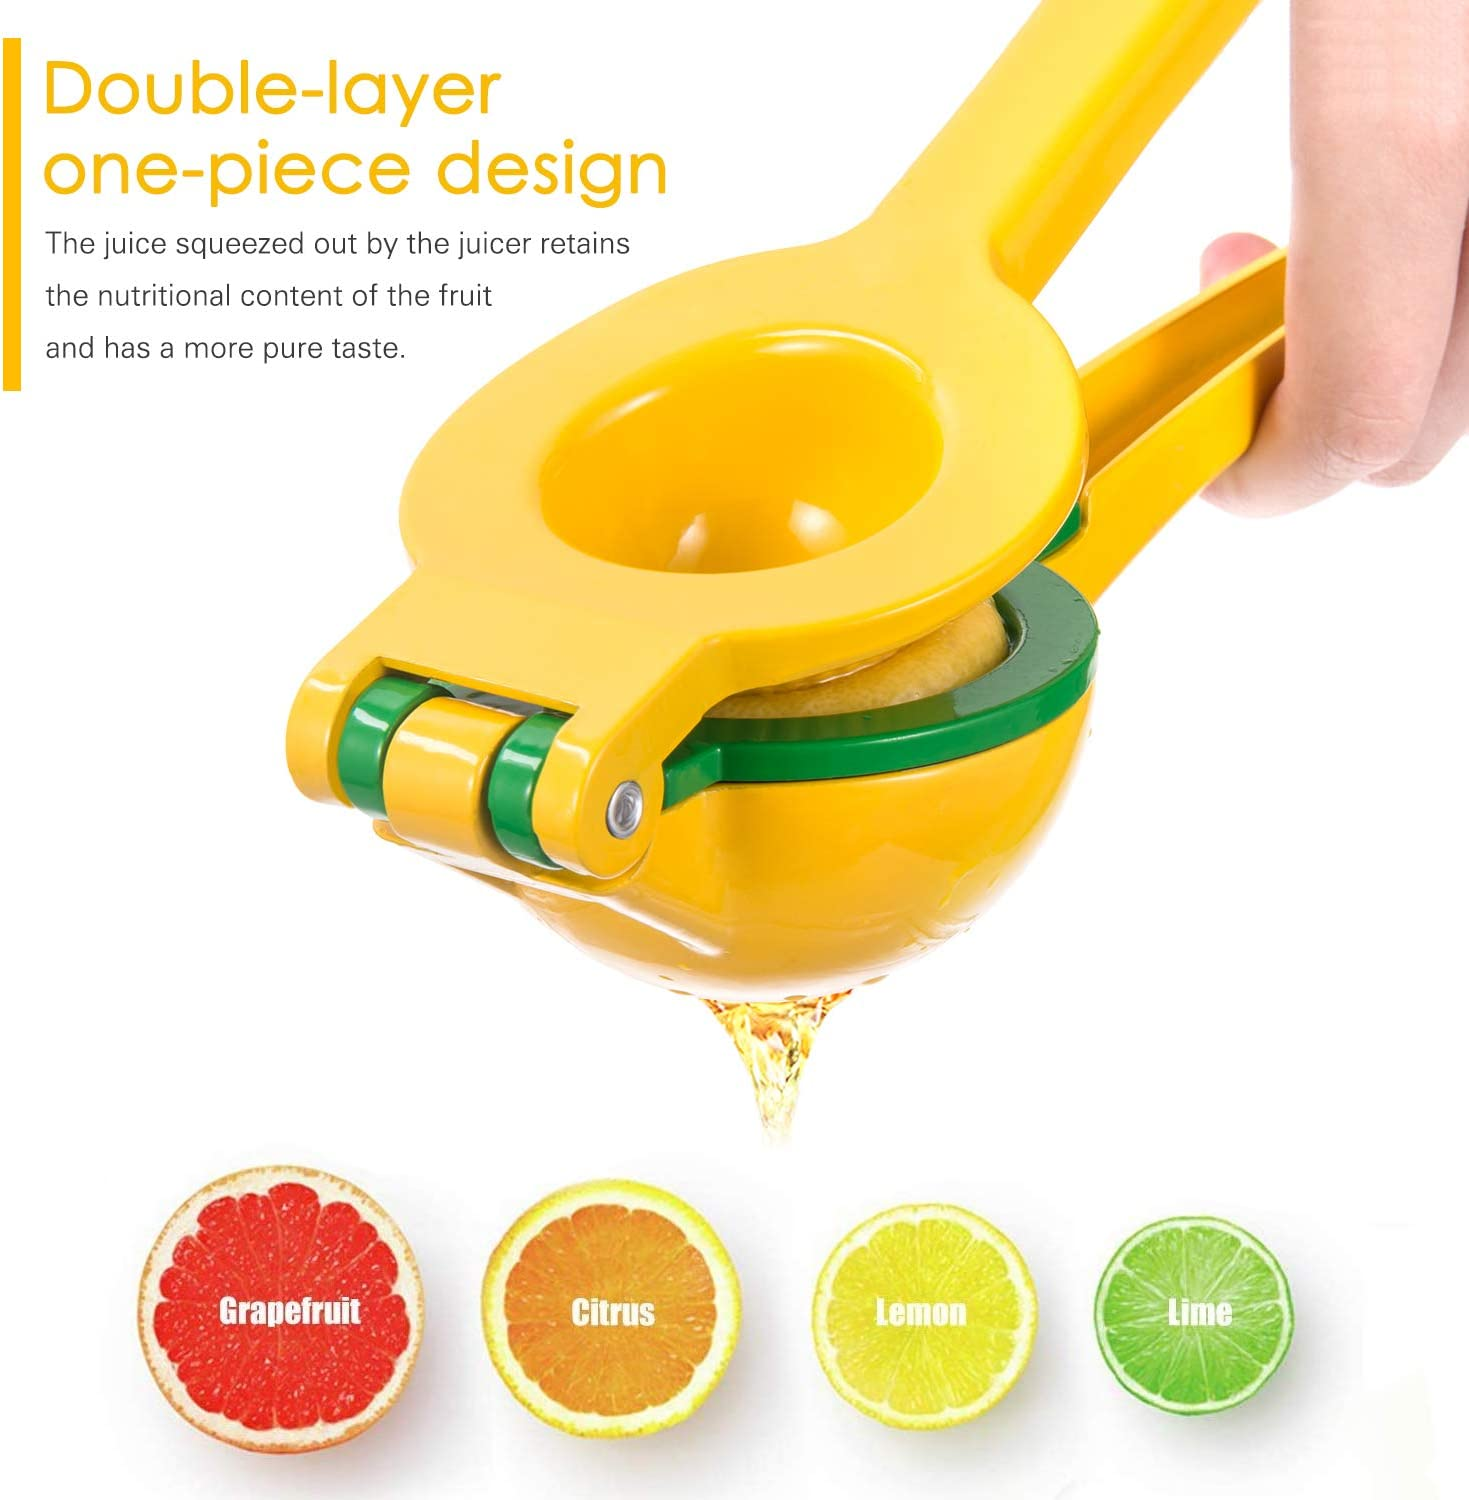 Fruit & Vegetable Tools Adoric Lemon Squeezer Yellow and Green ...